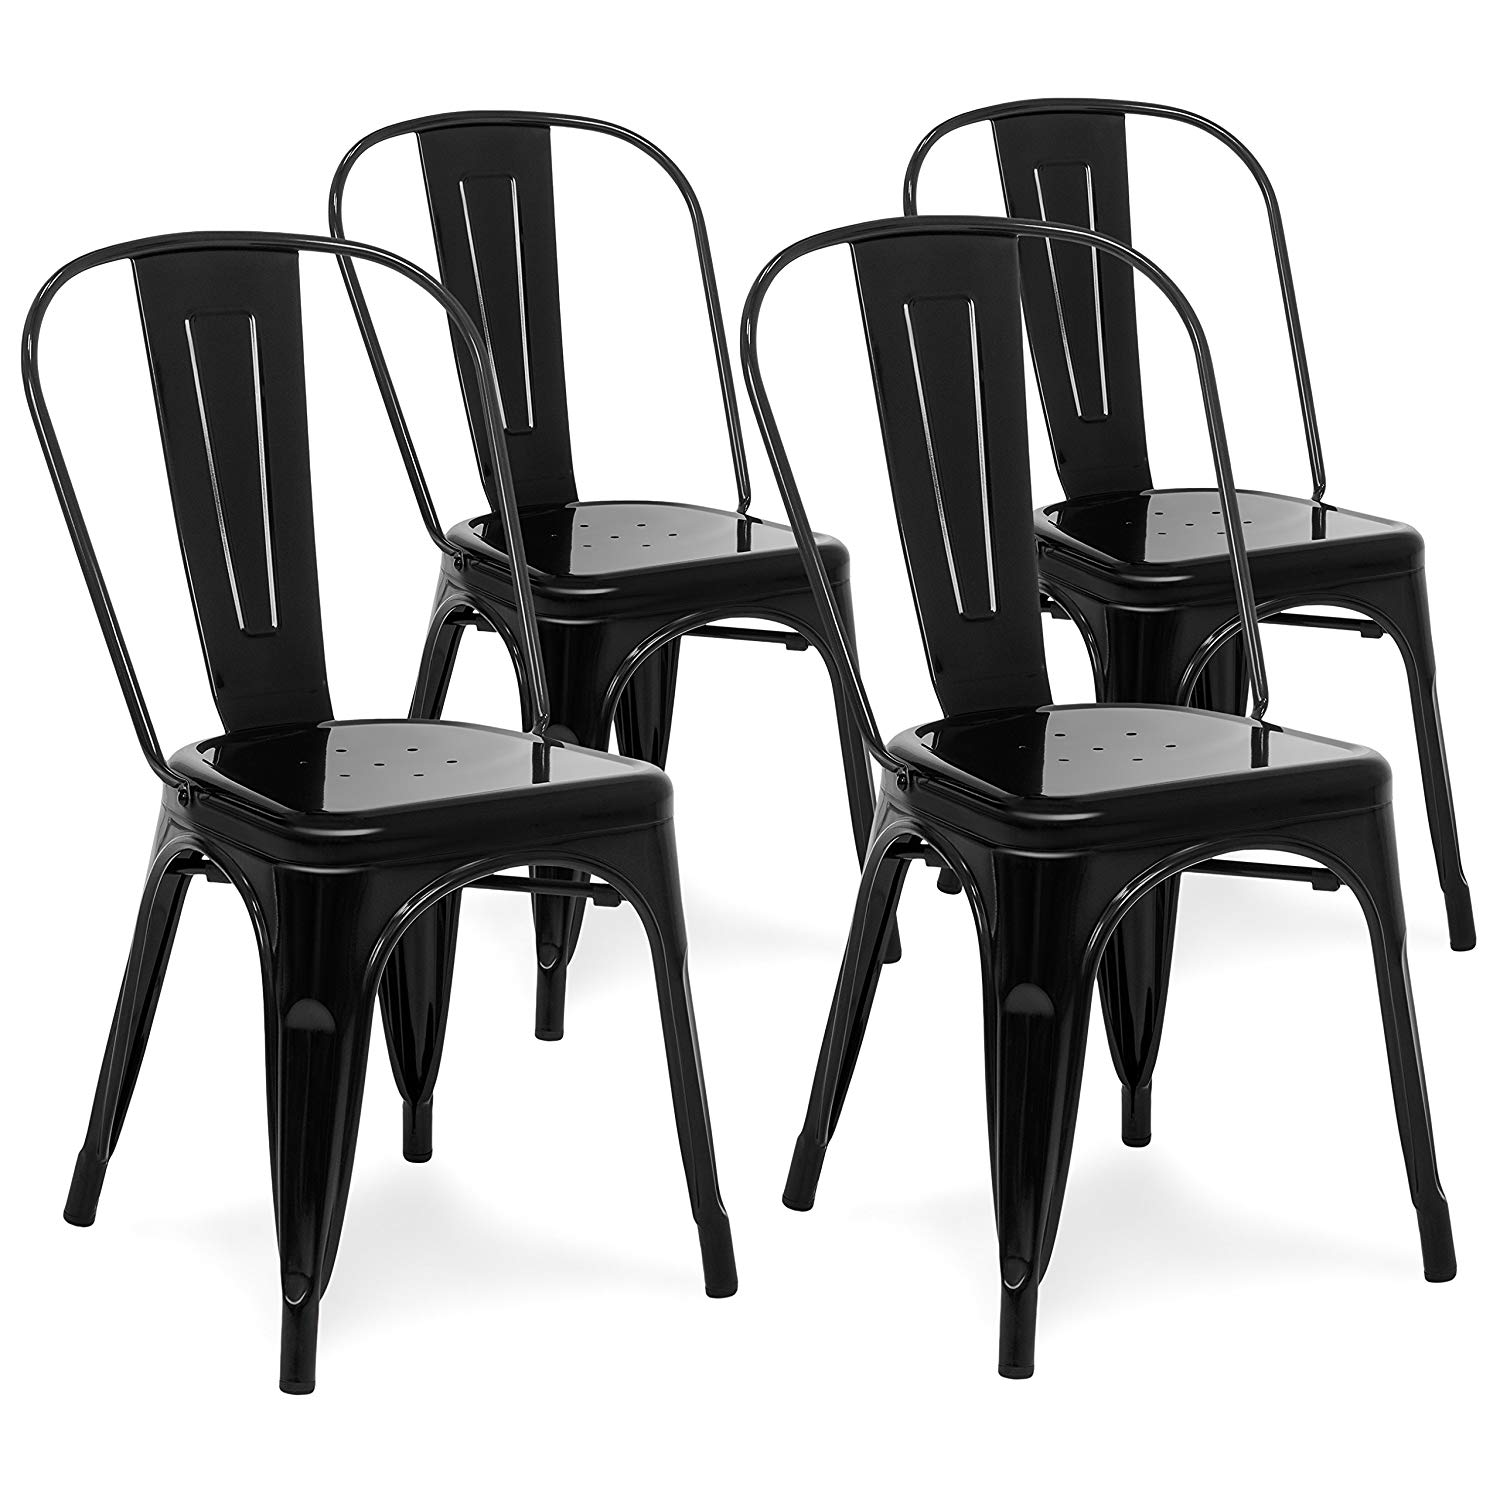 New 4 Industrial Metal Bistro Dining Chairs Stacking Black Cb4